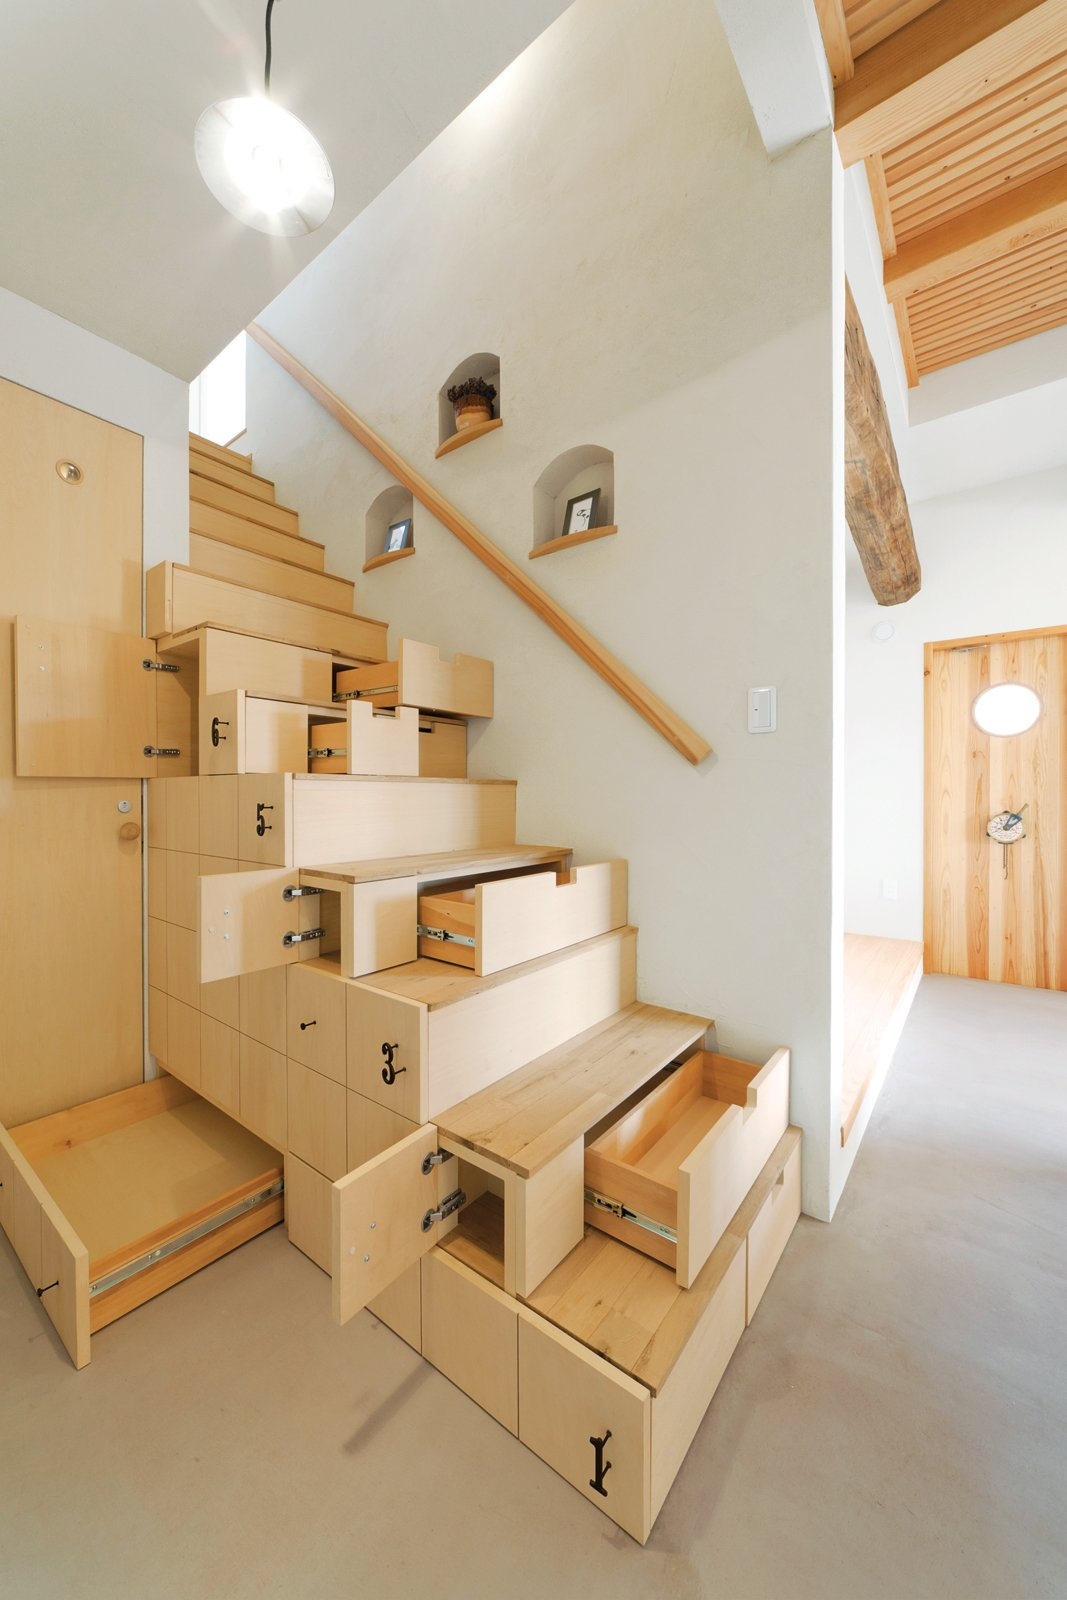 Photo caption: In traditional Japanese houses, clever carpenters often combined staircases with storage to maximize living space and storage. Tagged: Storage and Under Stairs.  Best Storage Photos from 10 Clever Ways to Sneak Storage Into Your Renovation